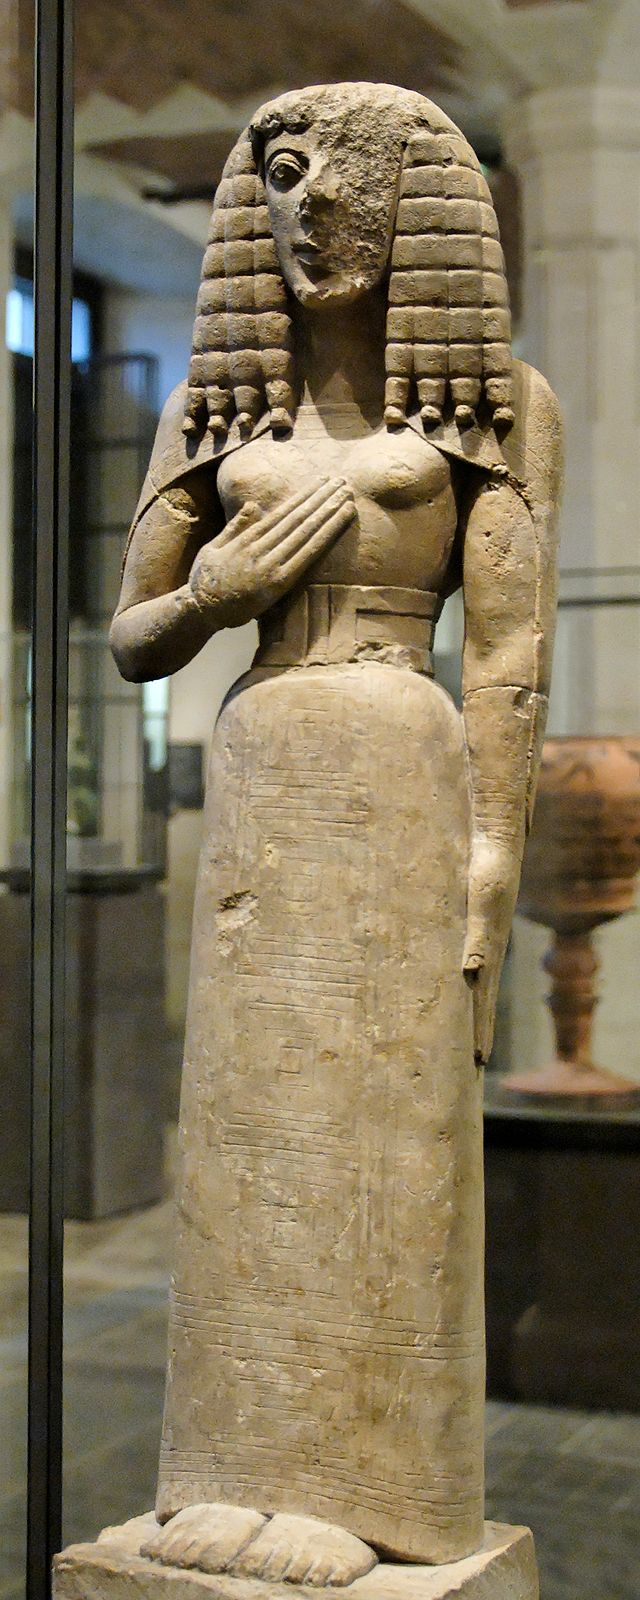 640px-Lady_of_Auxerre_Louvre_Ma3098_n1.jpg